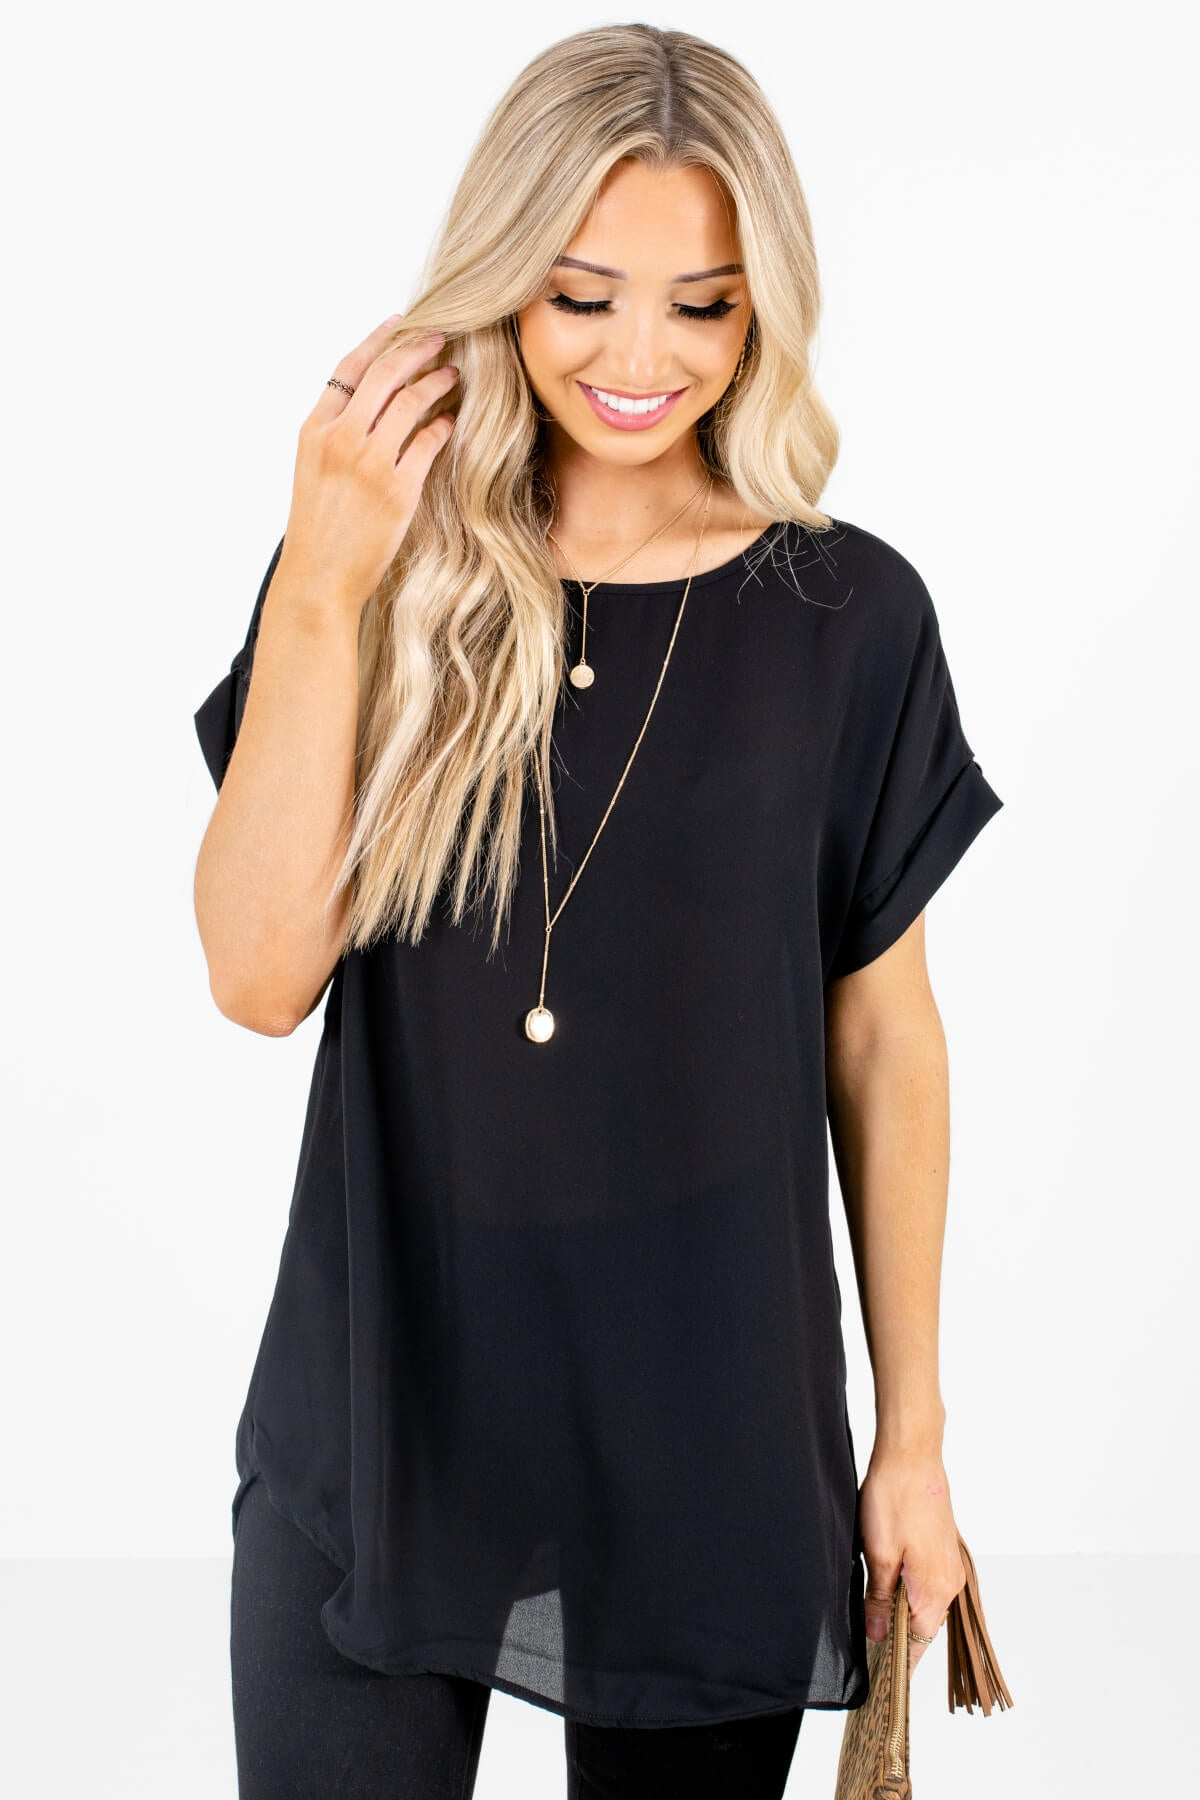 Black Lightweight and Flowy Boutique Blouses for Women